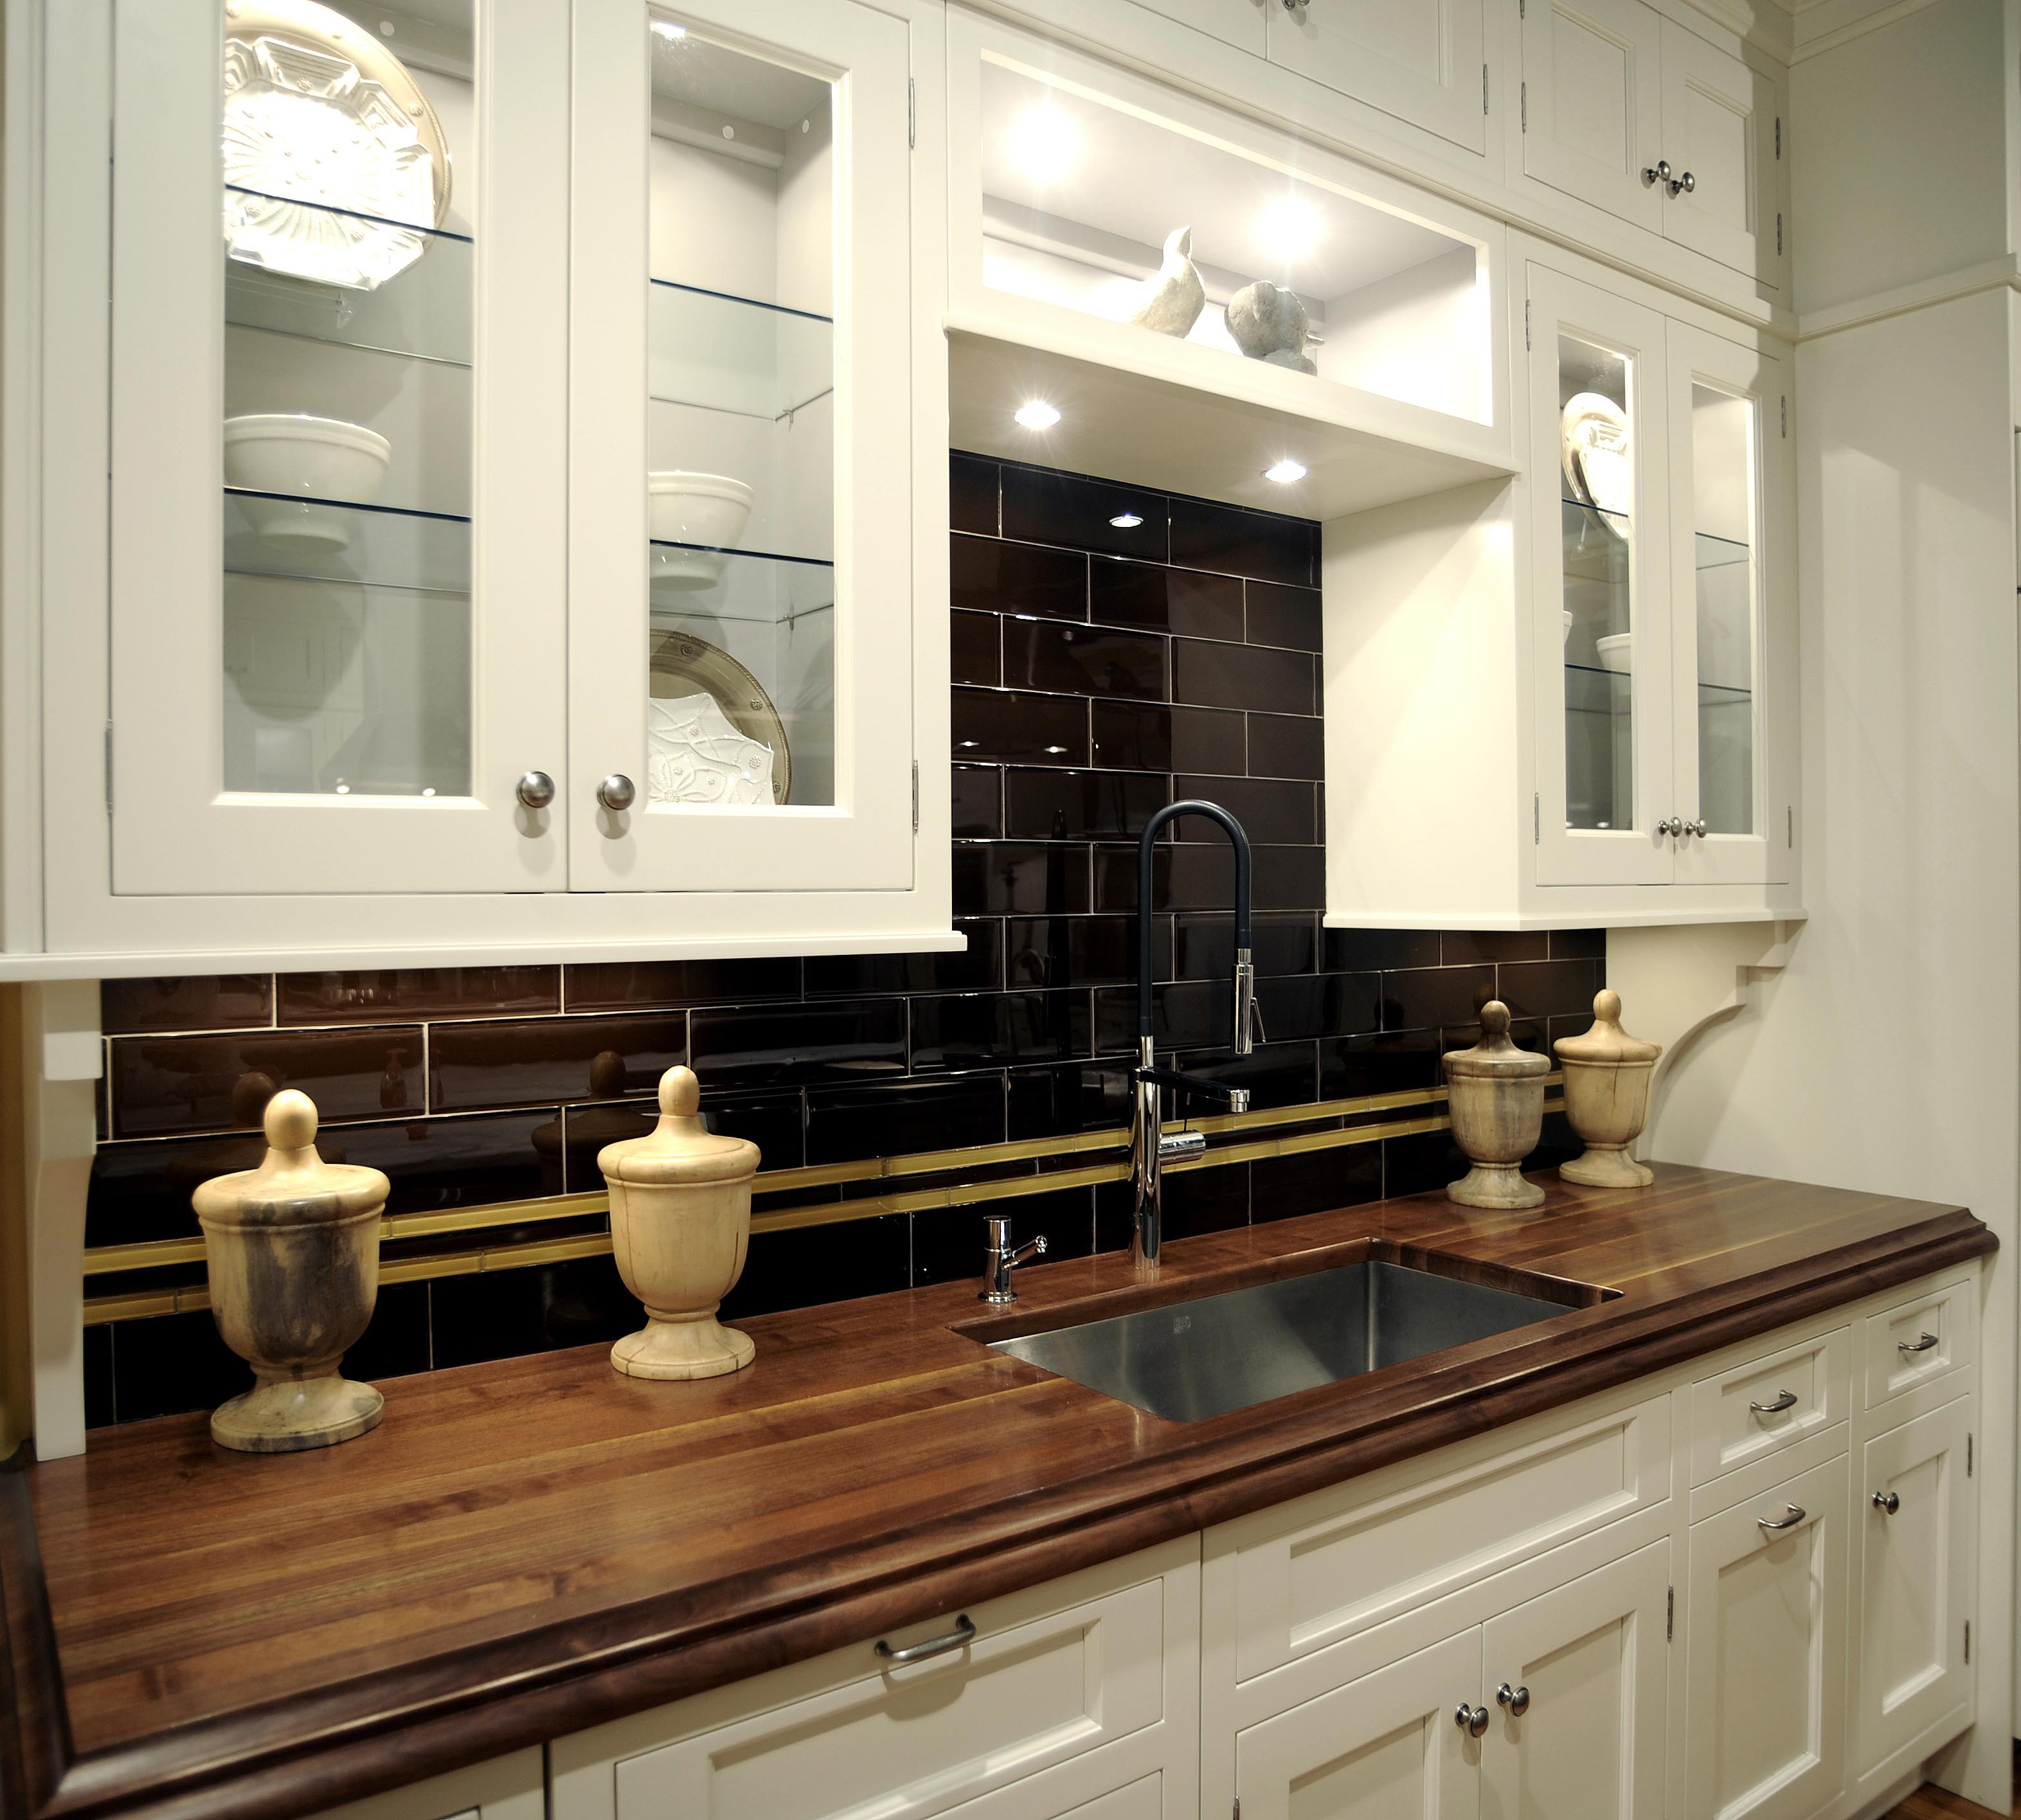 wood kitchen counters and mixer december 2012 archives countertop butcherblock